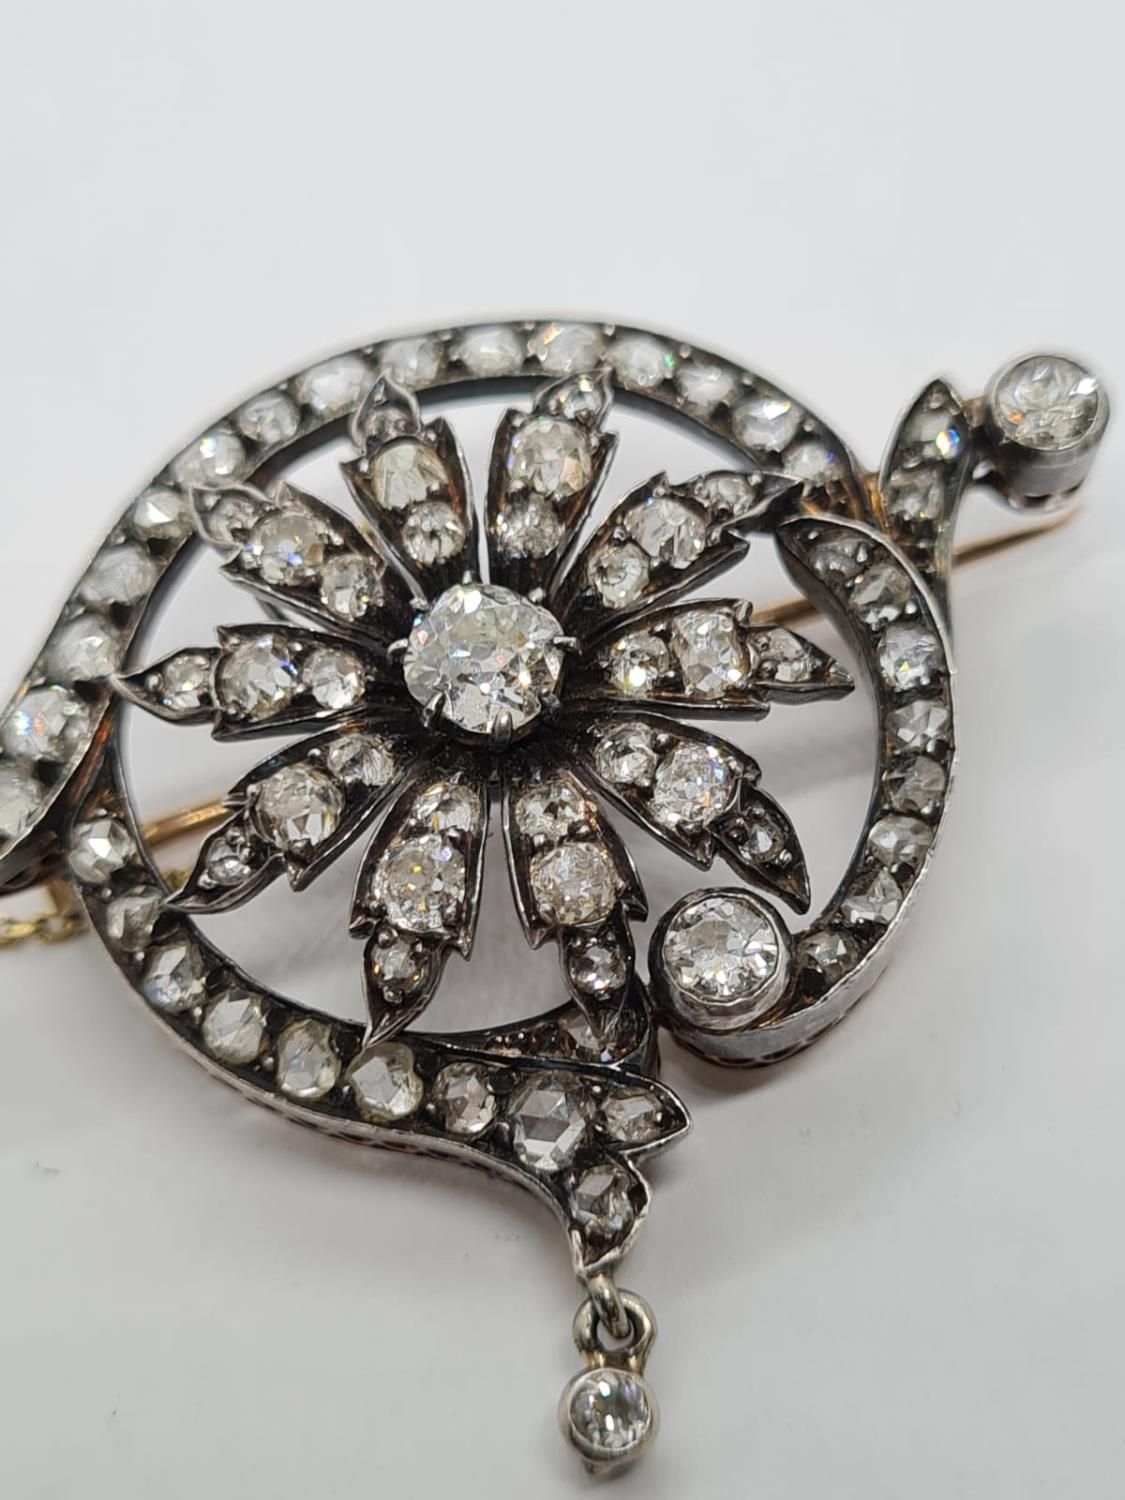 Antique Silver and Gold Diamond BROOCH with 4 ct of top quality Diamonds. 12g 4.5cm width - Image 3 of 5